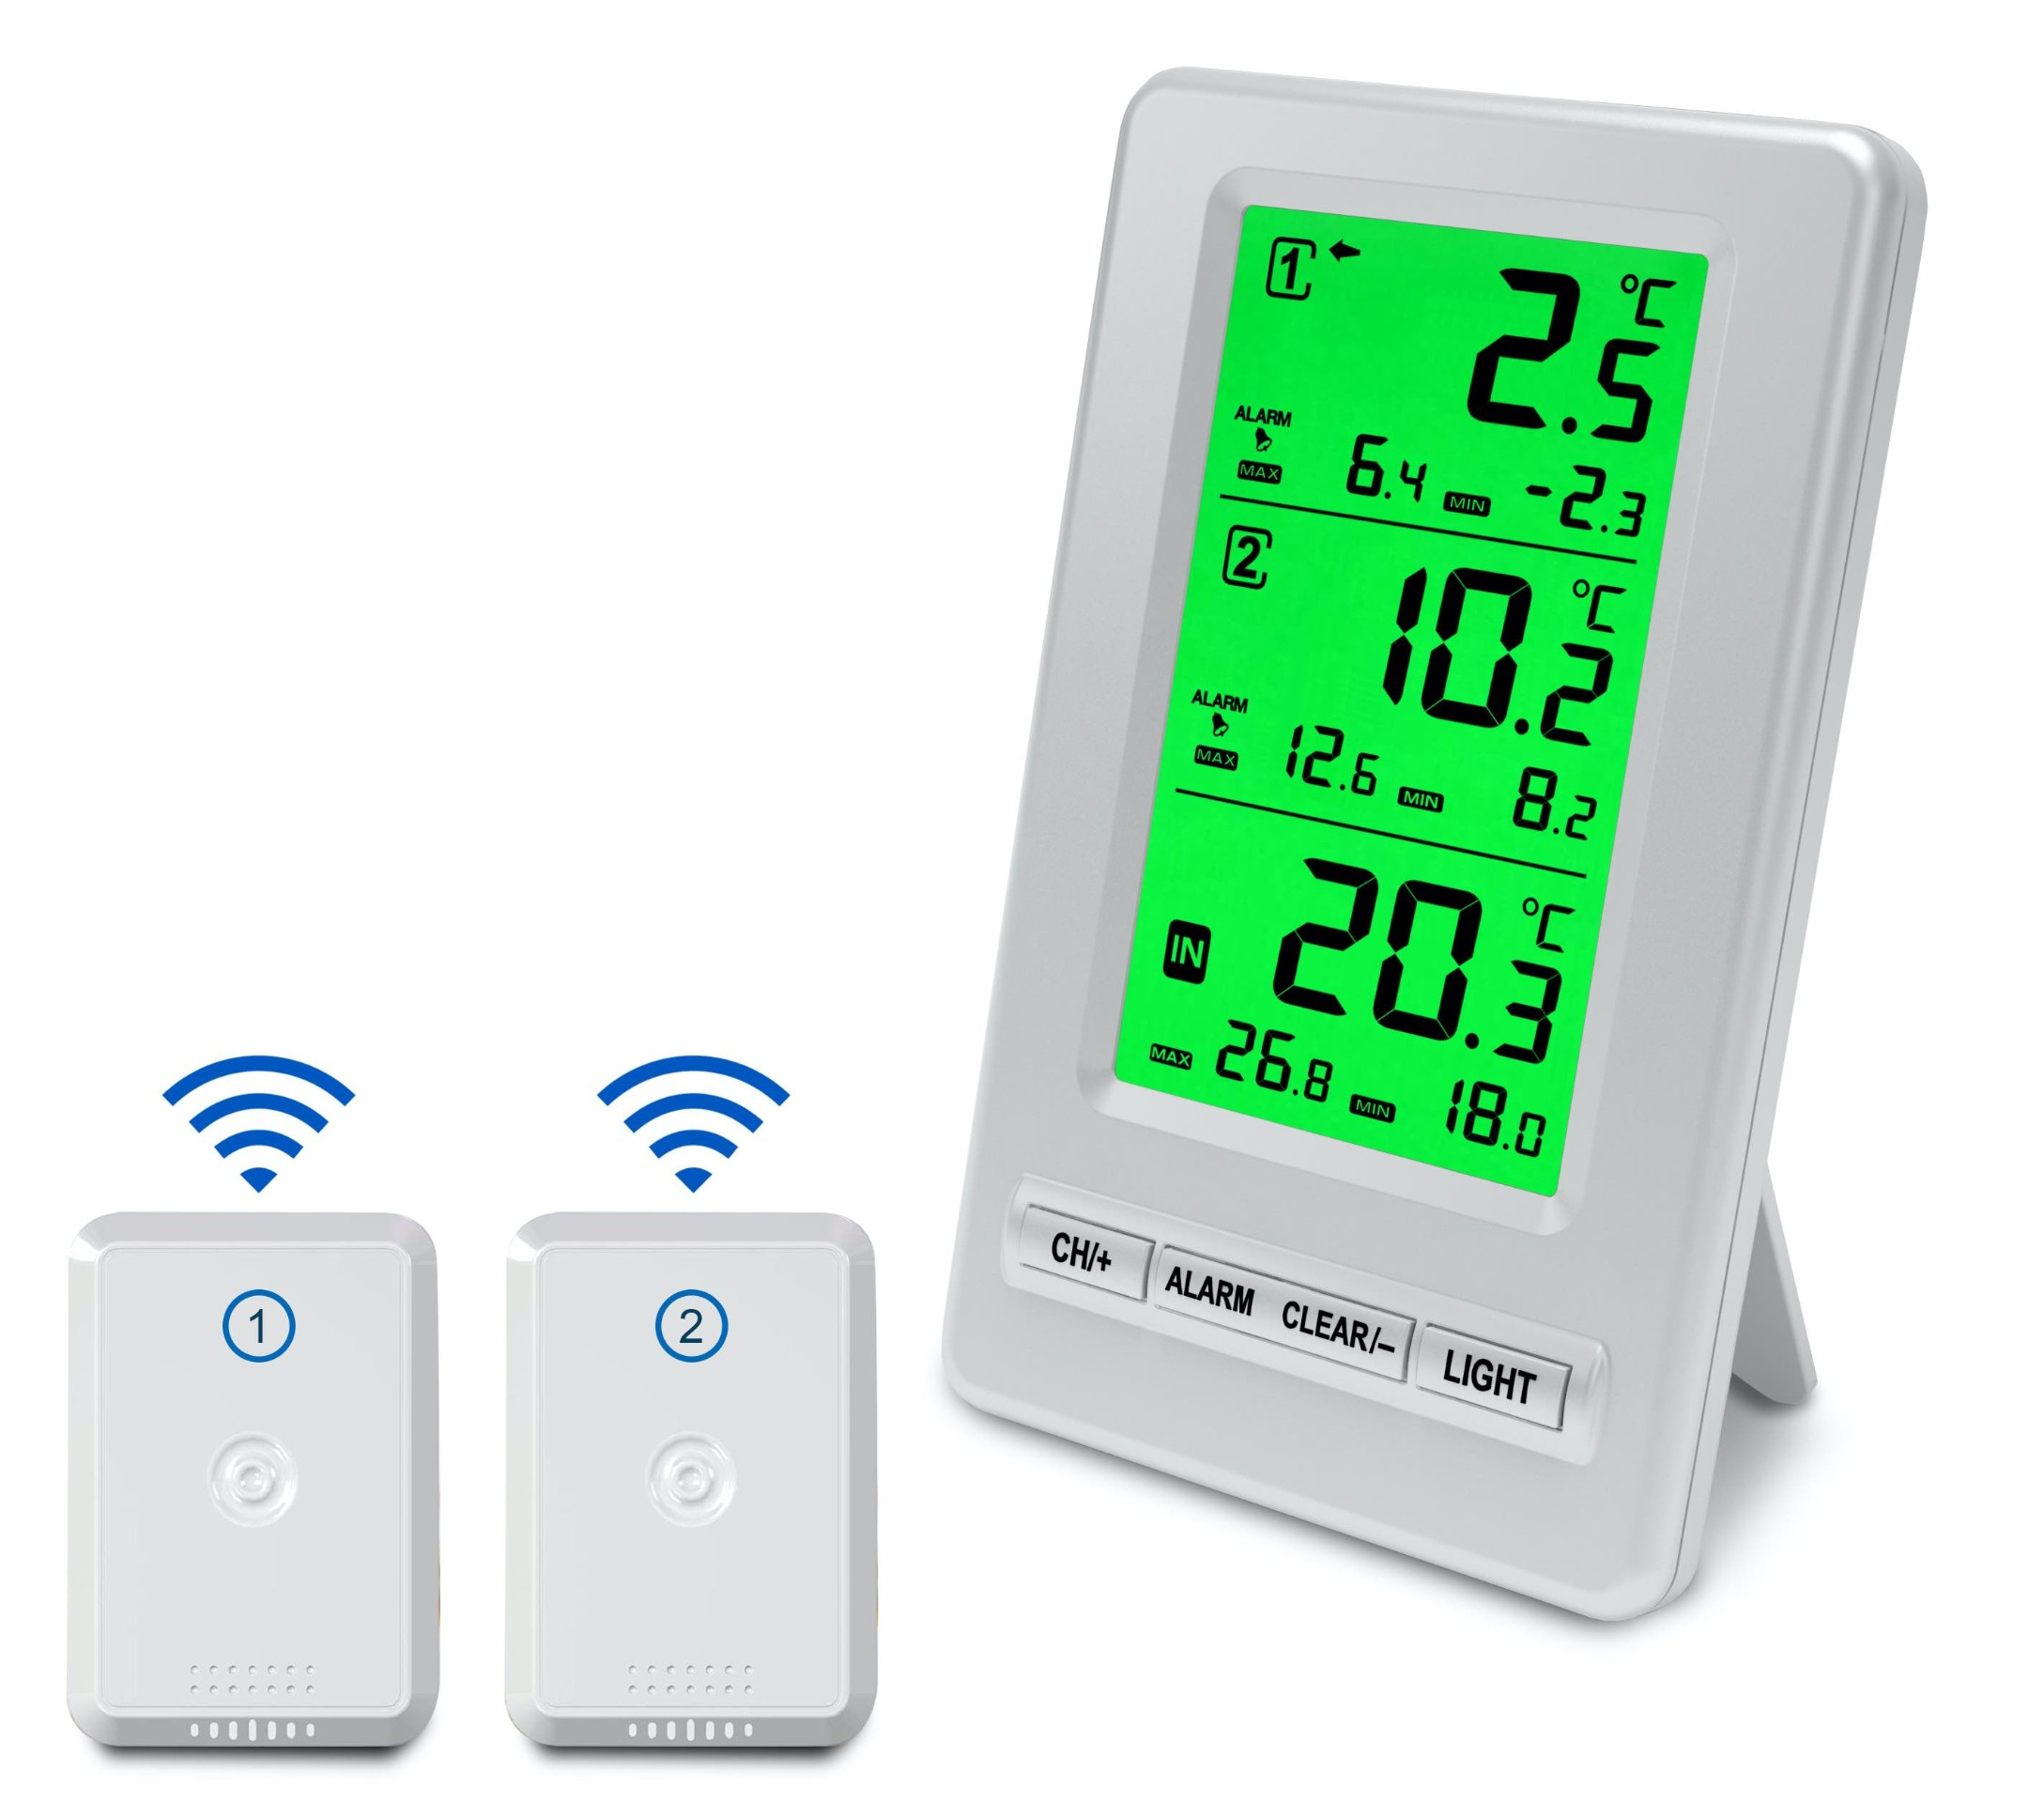 FT-0418 Wireless fridge freezer thermometer